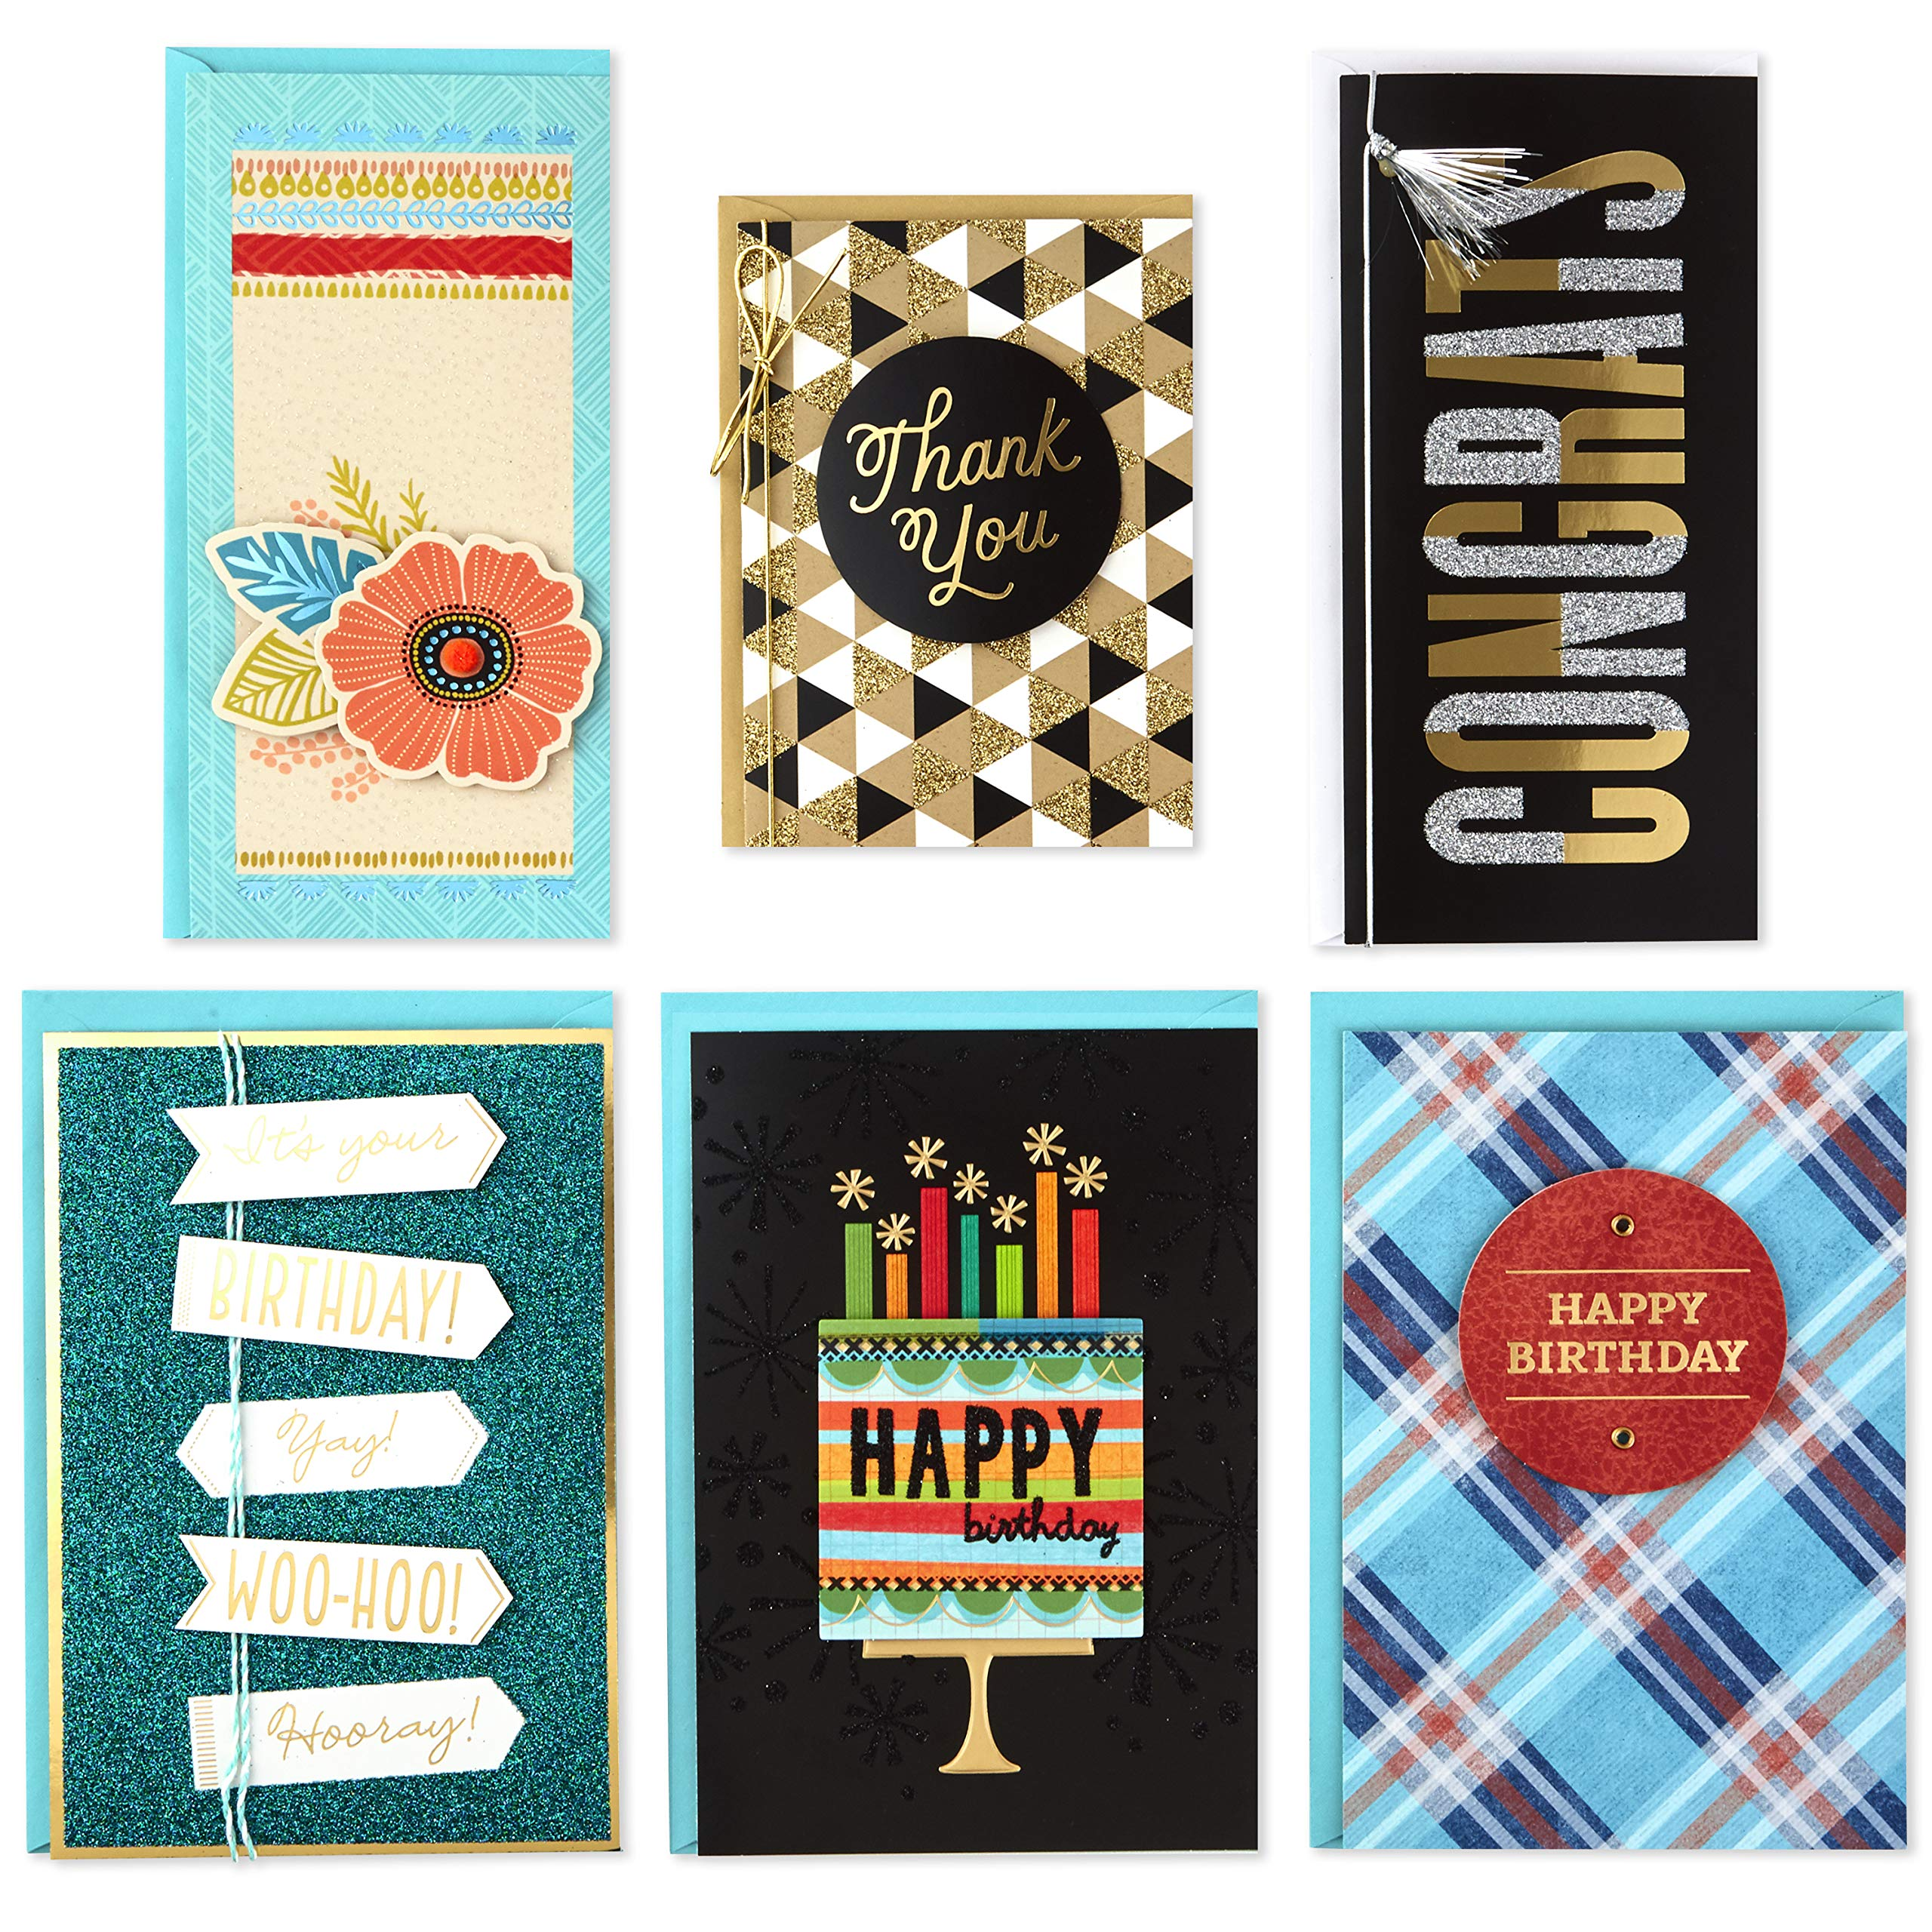 Hallmark Handmade All Occasion Boxed Greeting Card Assortment, Modern Floral (Pack of 24)-Birthday Cards, Baby Shower Cards, Wedding Cards, Sympathy Cards, Thinking of You Cards, Thank You Cards by Hallmark (Image #4)